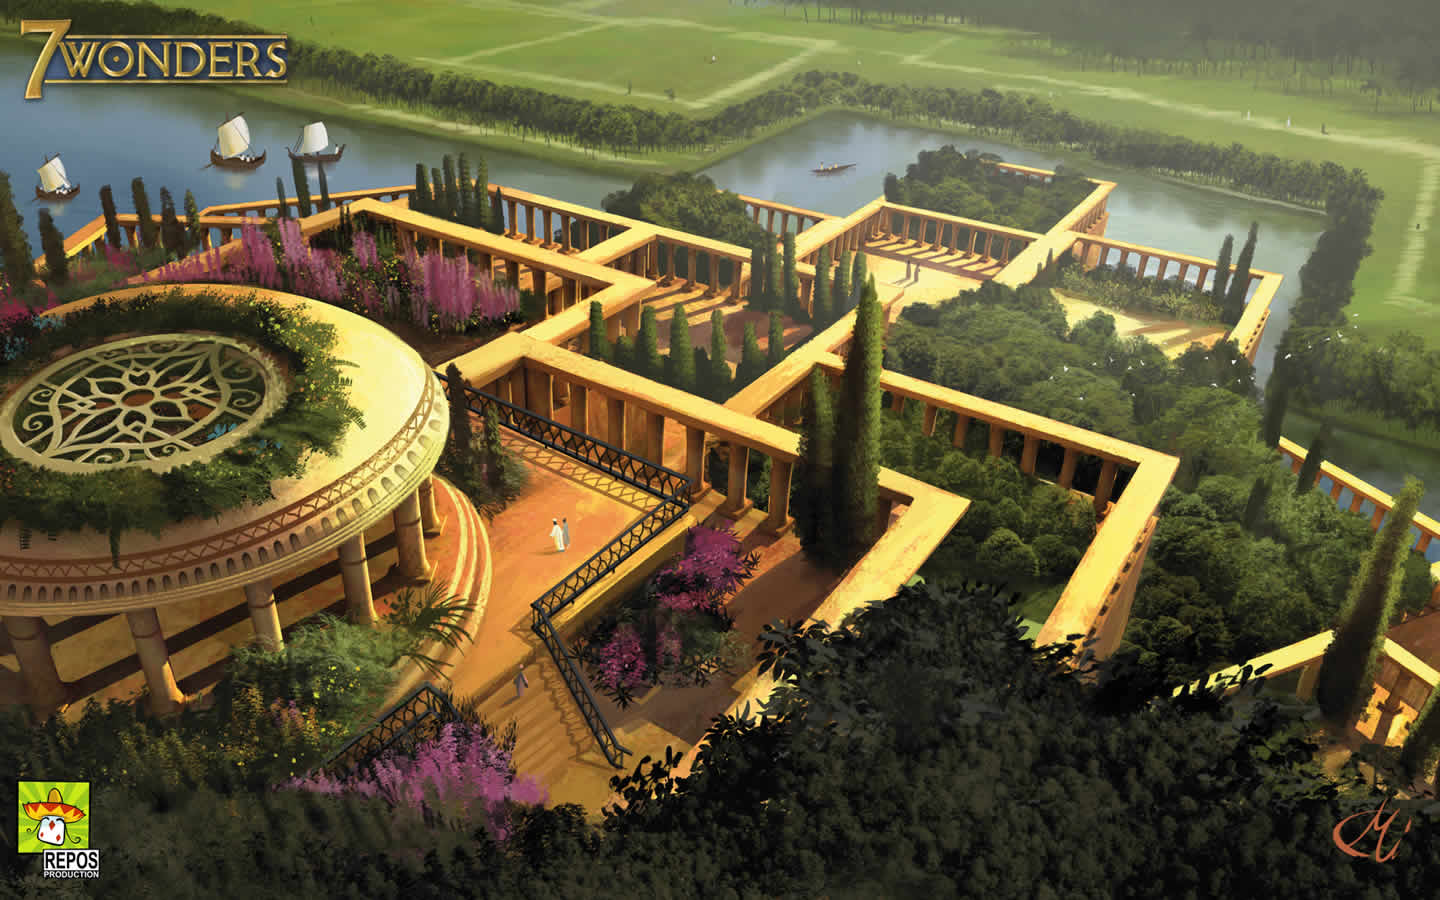 essay on the hanging gardens of babylon Stephanie cavalier professor kucsan september 25, y the hanging gardens of babylon the hanging gardens of babylon are described at a length and height unmatched in its engineering.